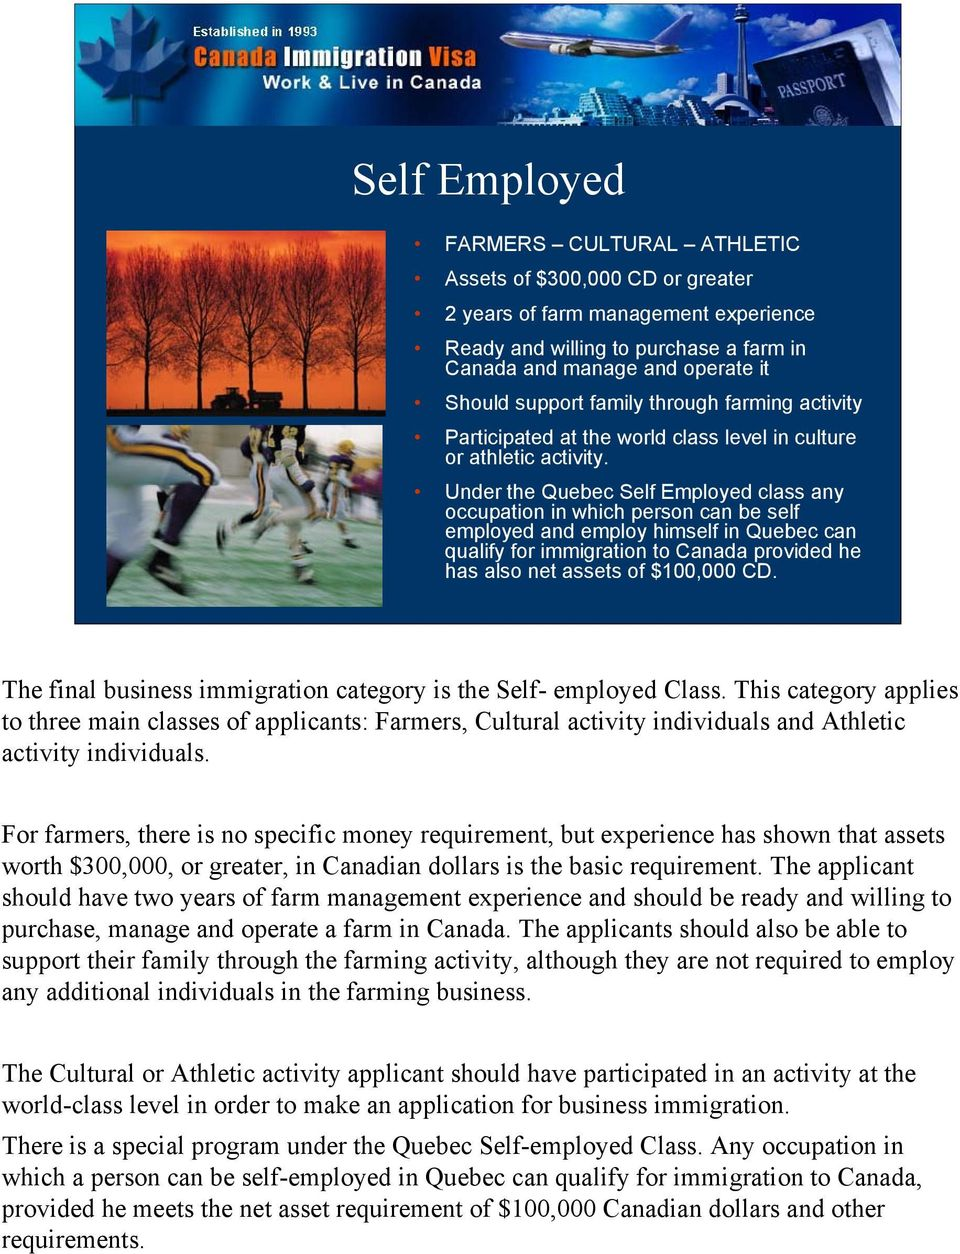 Under the Quebec Self Employed class any occupation in which person can be self employed and employ himself in Quebec can qualify for immigration to Canada provided he has also net assets of $100,000